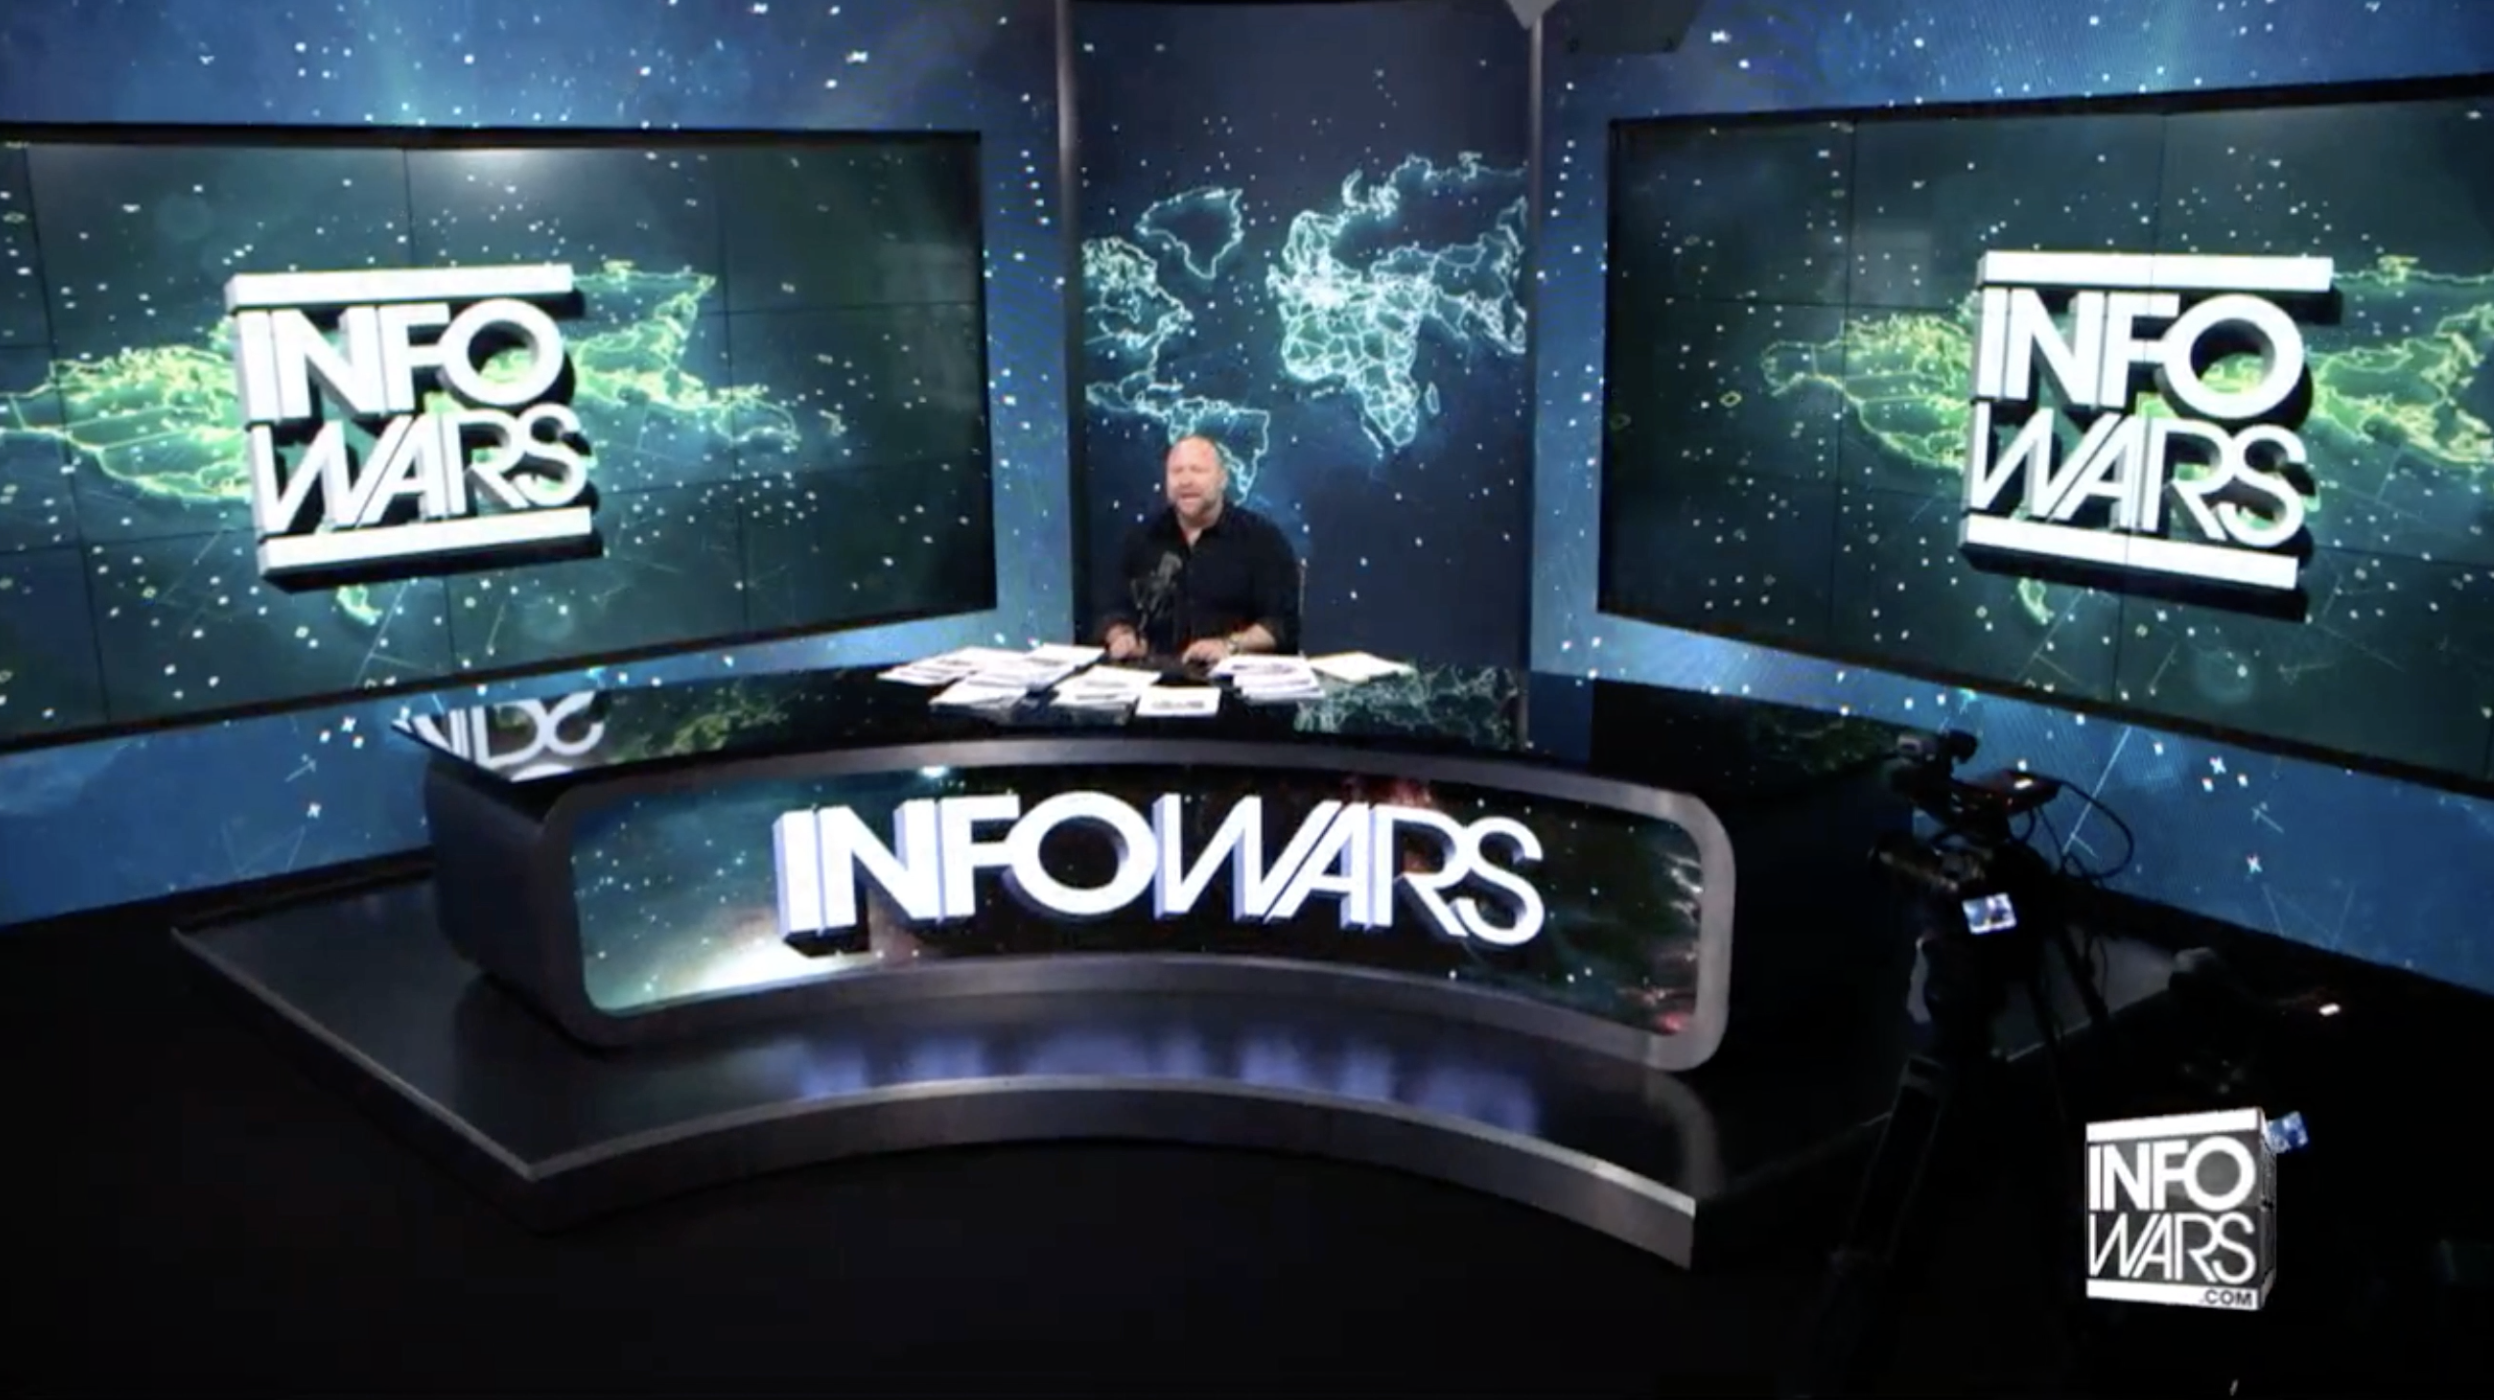 Alex Jones Infowars 4 17 2020 2